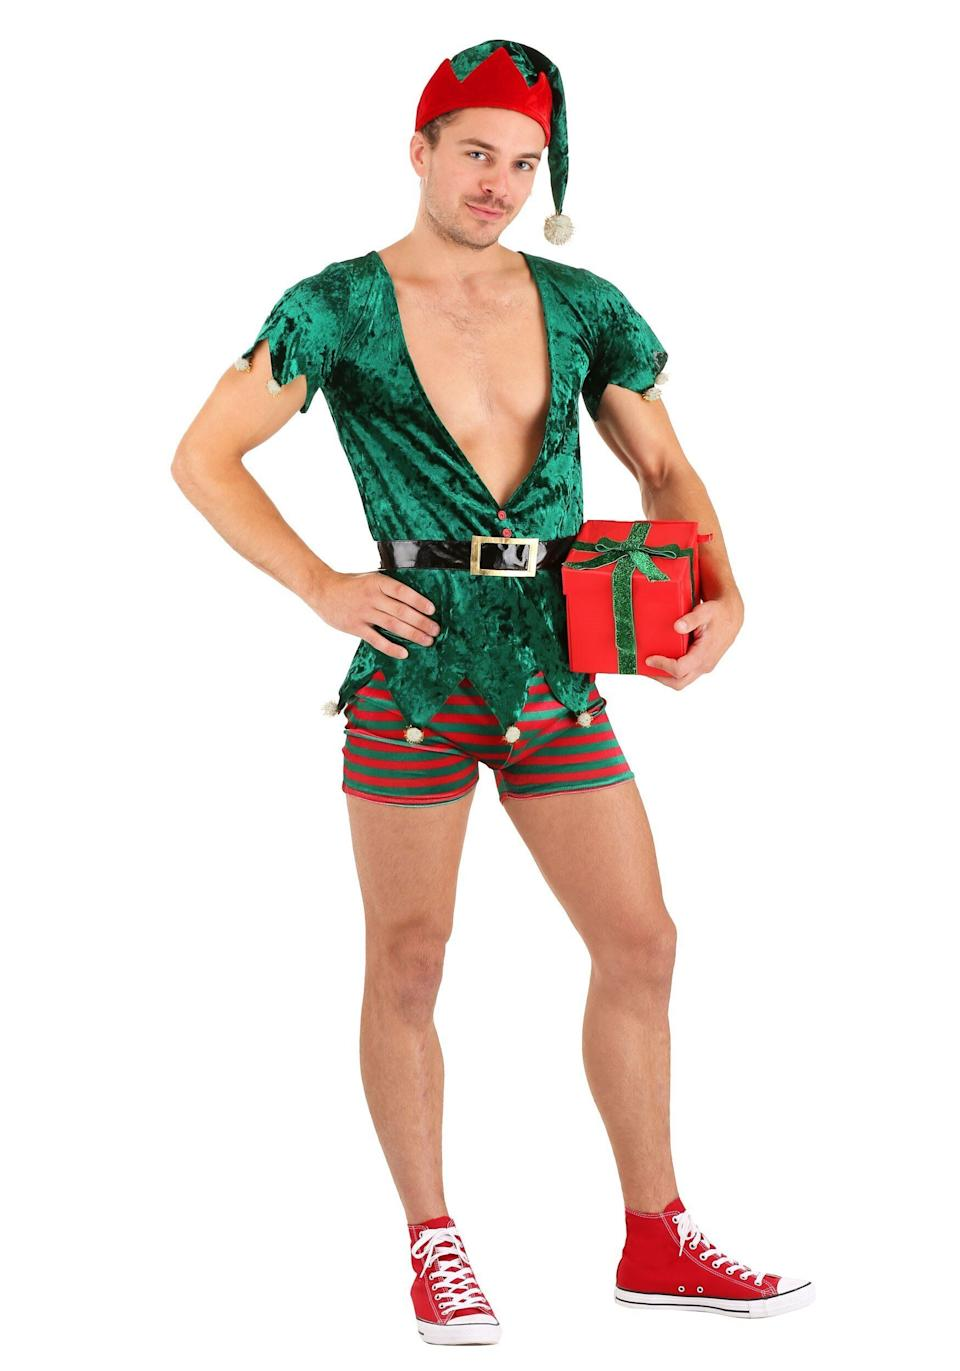 """If you're one of those people who fantasize about the romantic goings-on in Santa's workshop, this <a href=""""https://www.halloweencostumes.com/mens-sexy-christmas-elf-costume.html"""" target=""""_blank"""" rel=""""noopener noreferrer"""">sexy elf costume</a> is perfect for role playing."""